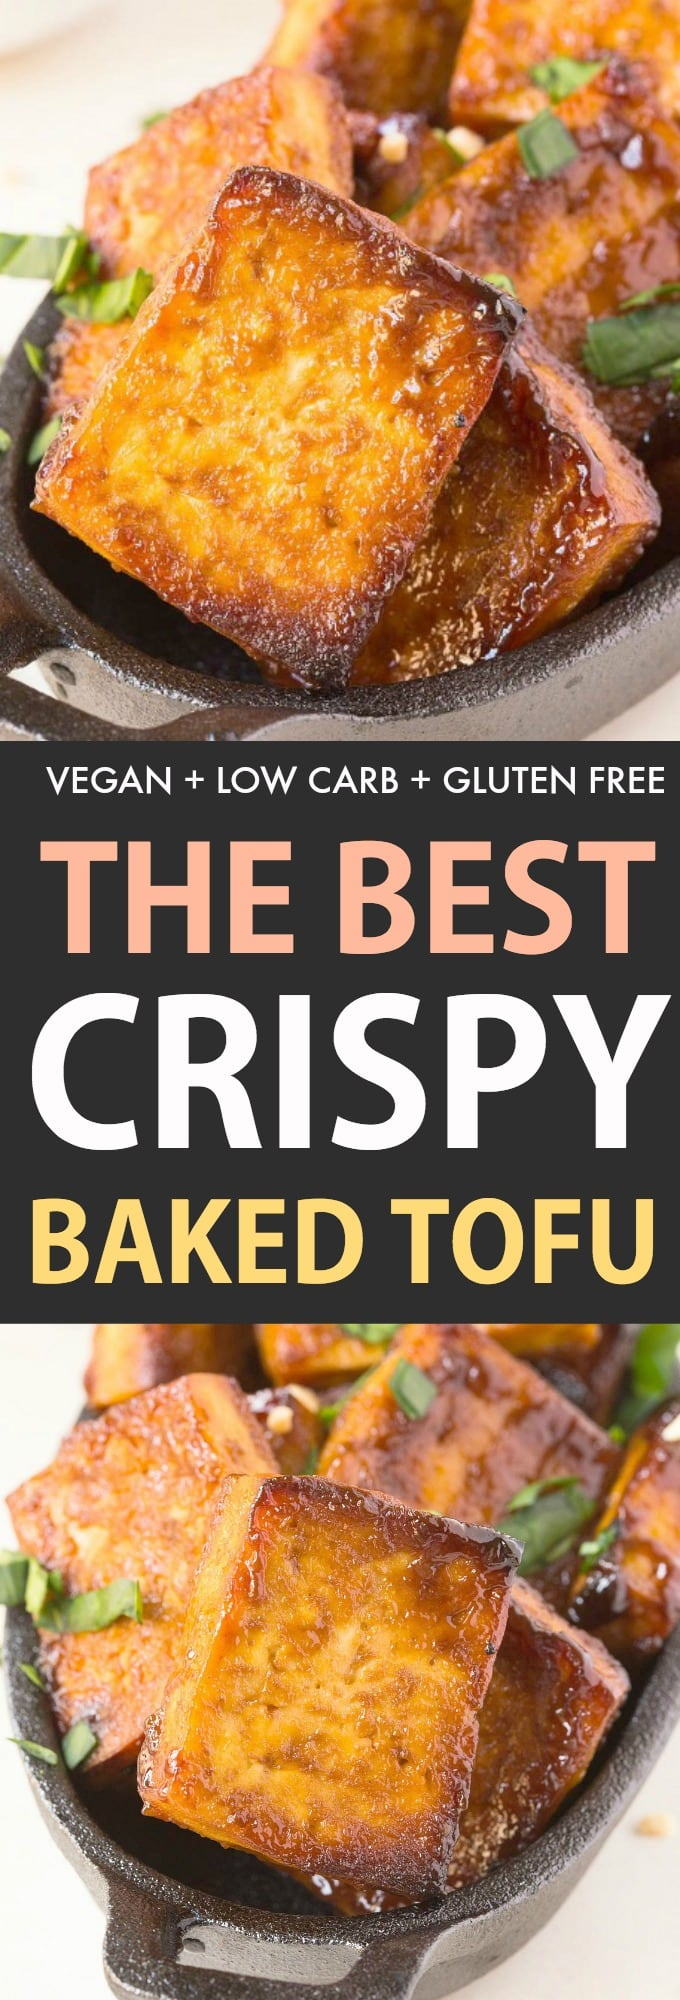 How to make the best crispy baked tofu in the oven